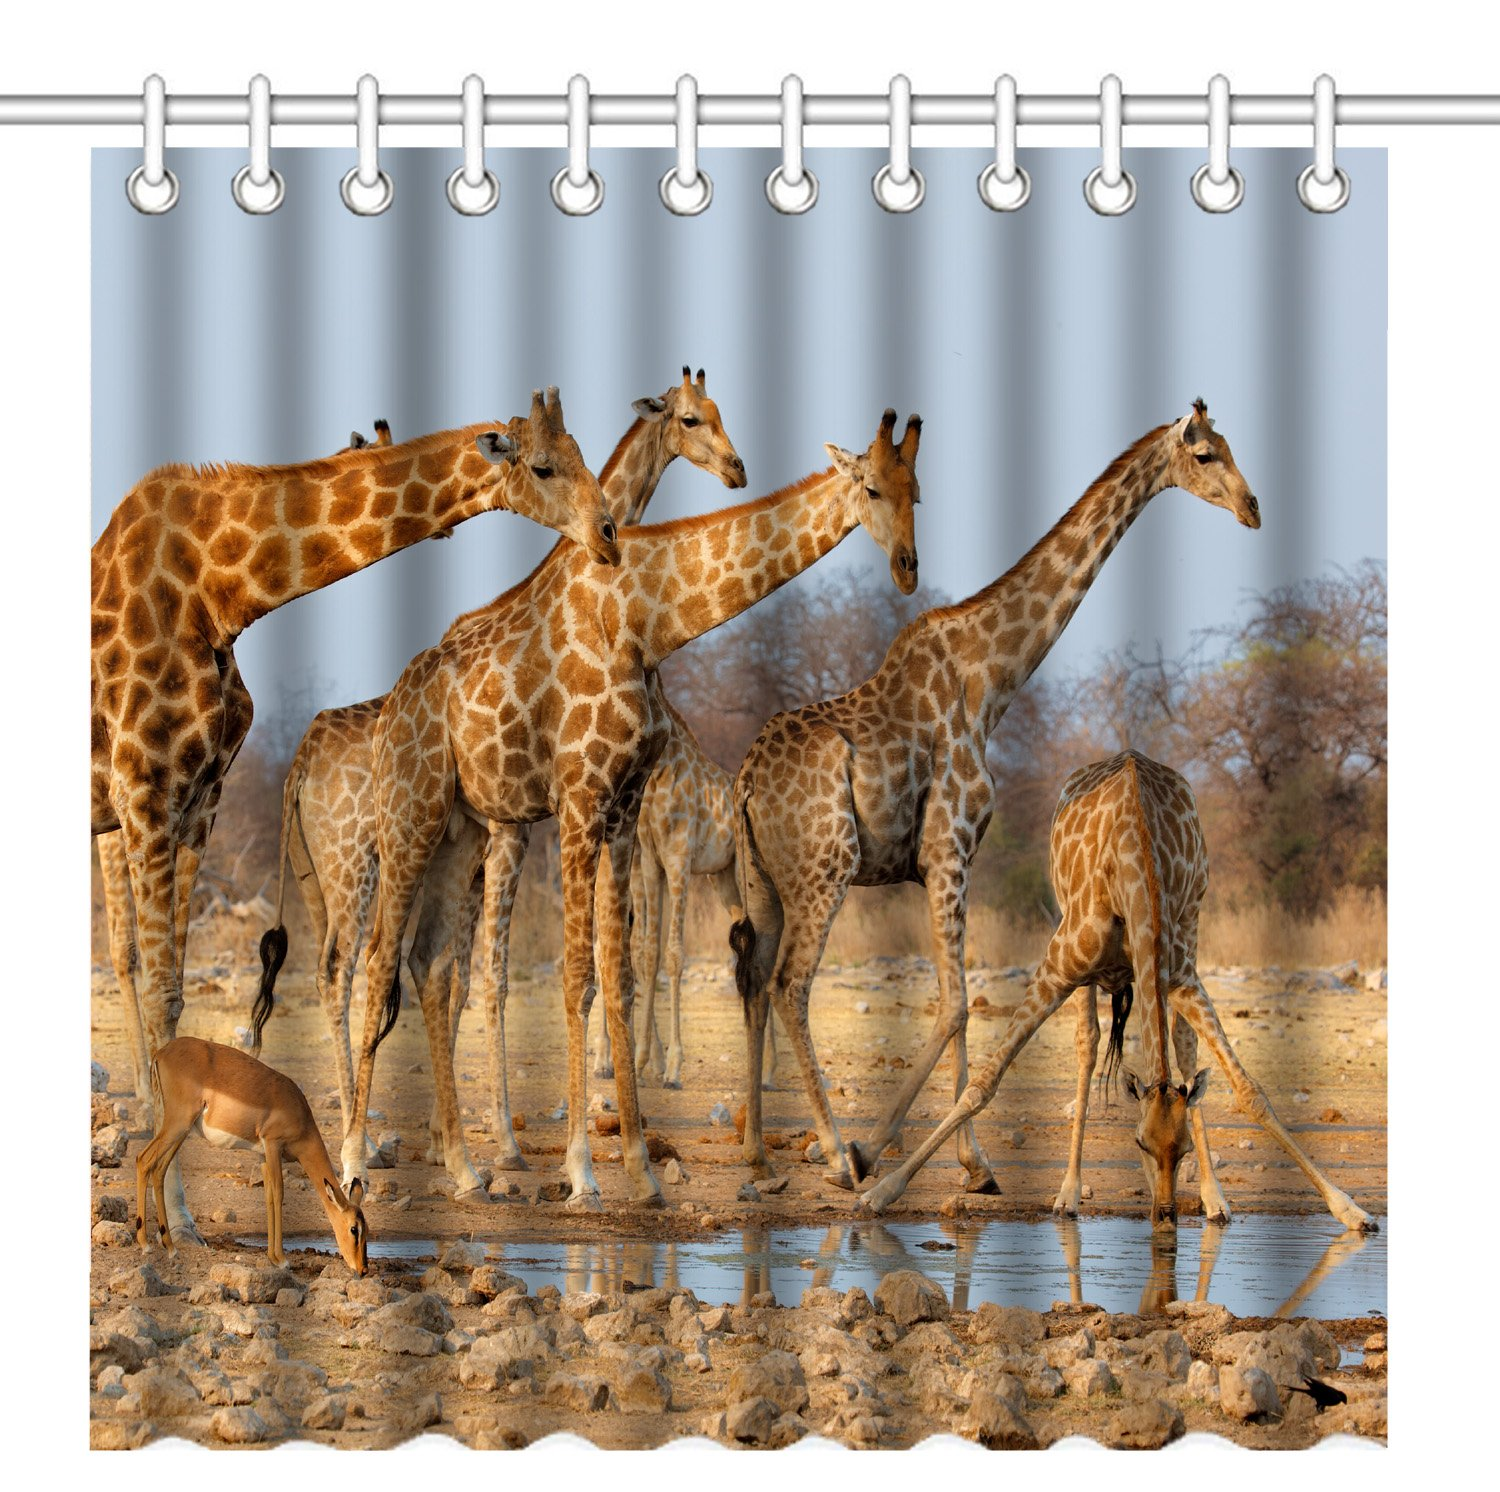 Wknoon 72 x 72 Inch Shower Curtain,Nature Wildlife Animal Giraffes Family,Waterproof Polyester Fabric Decorative Bathroom Bath Curtains by Wknoon